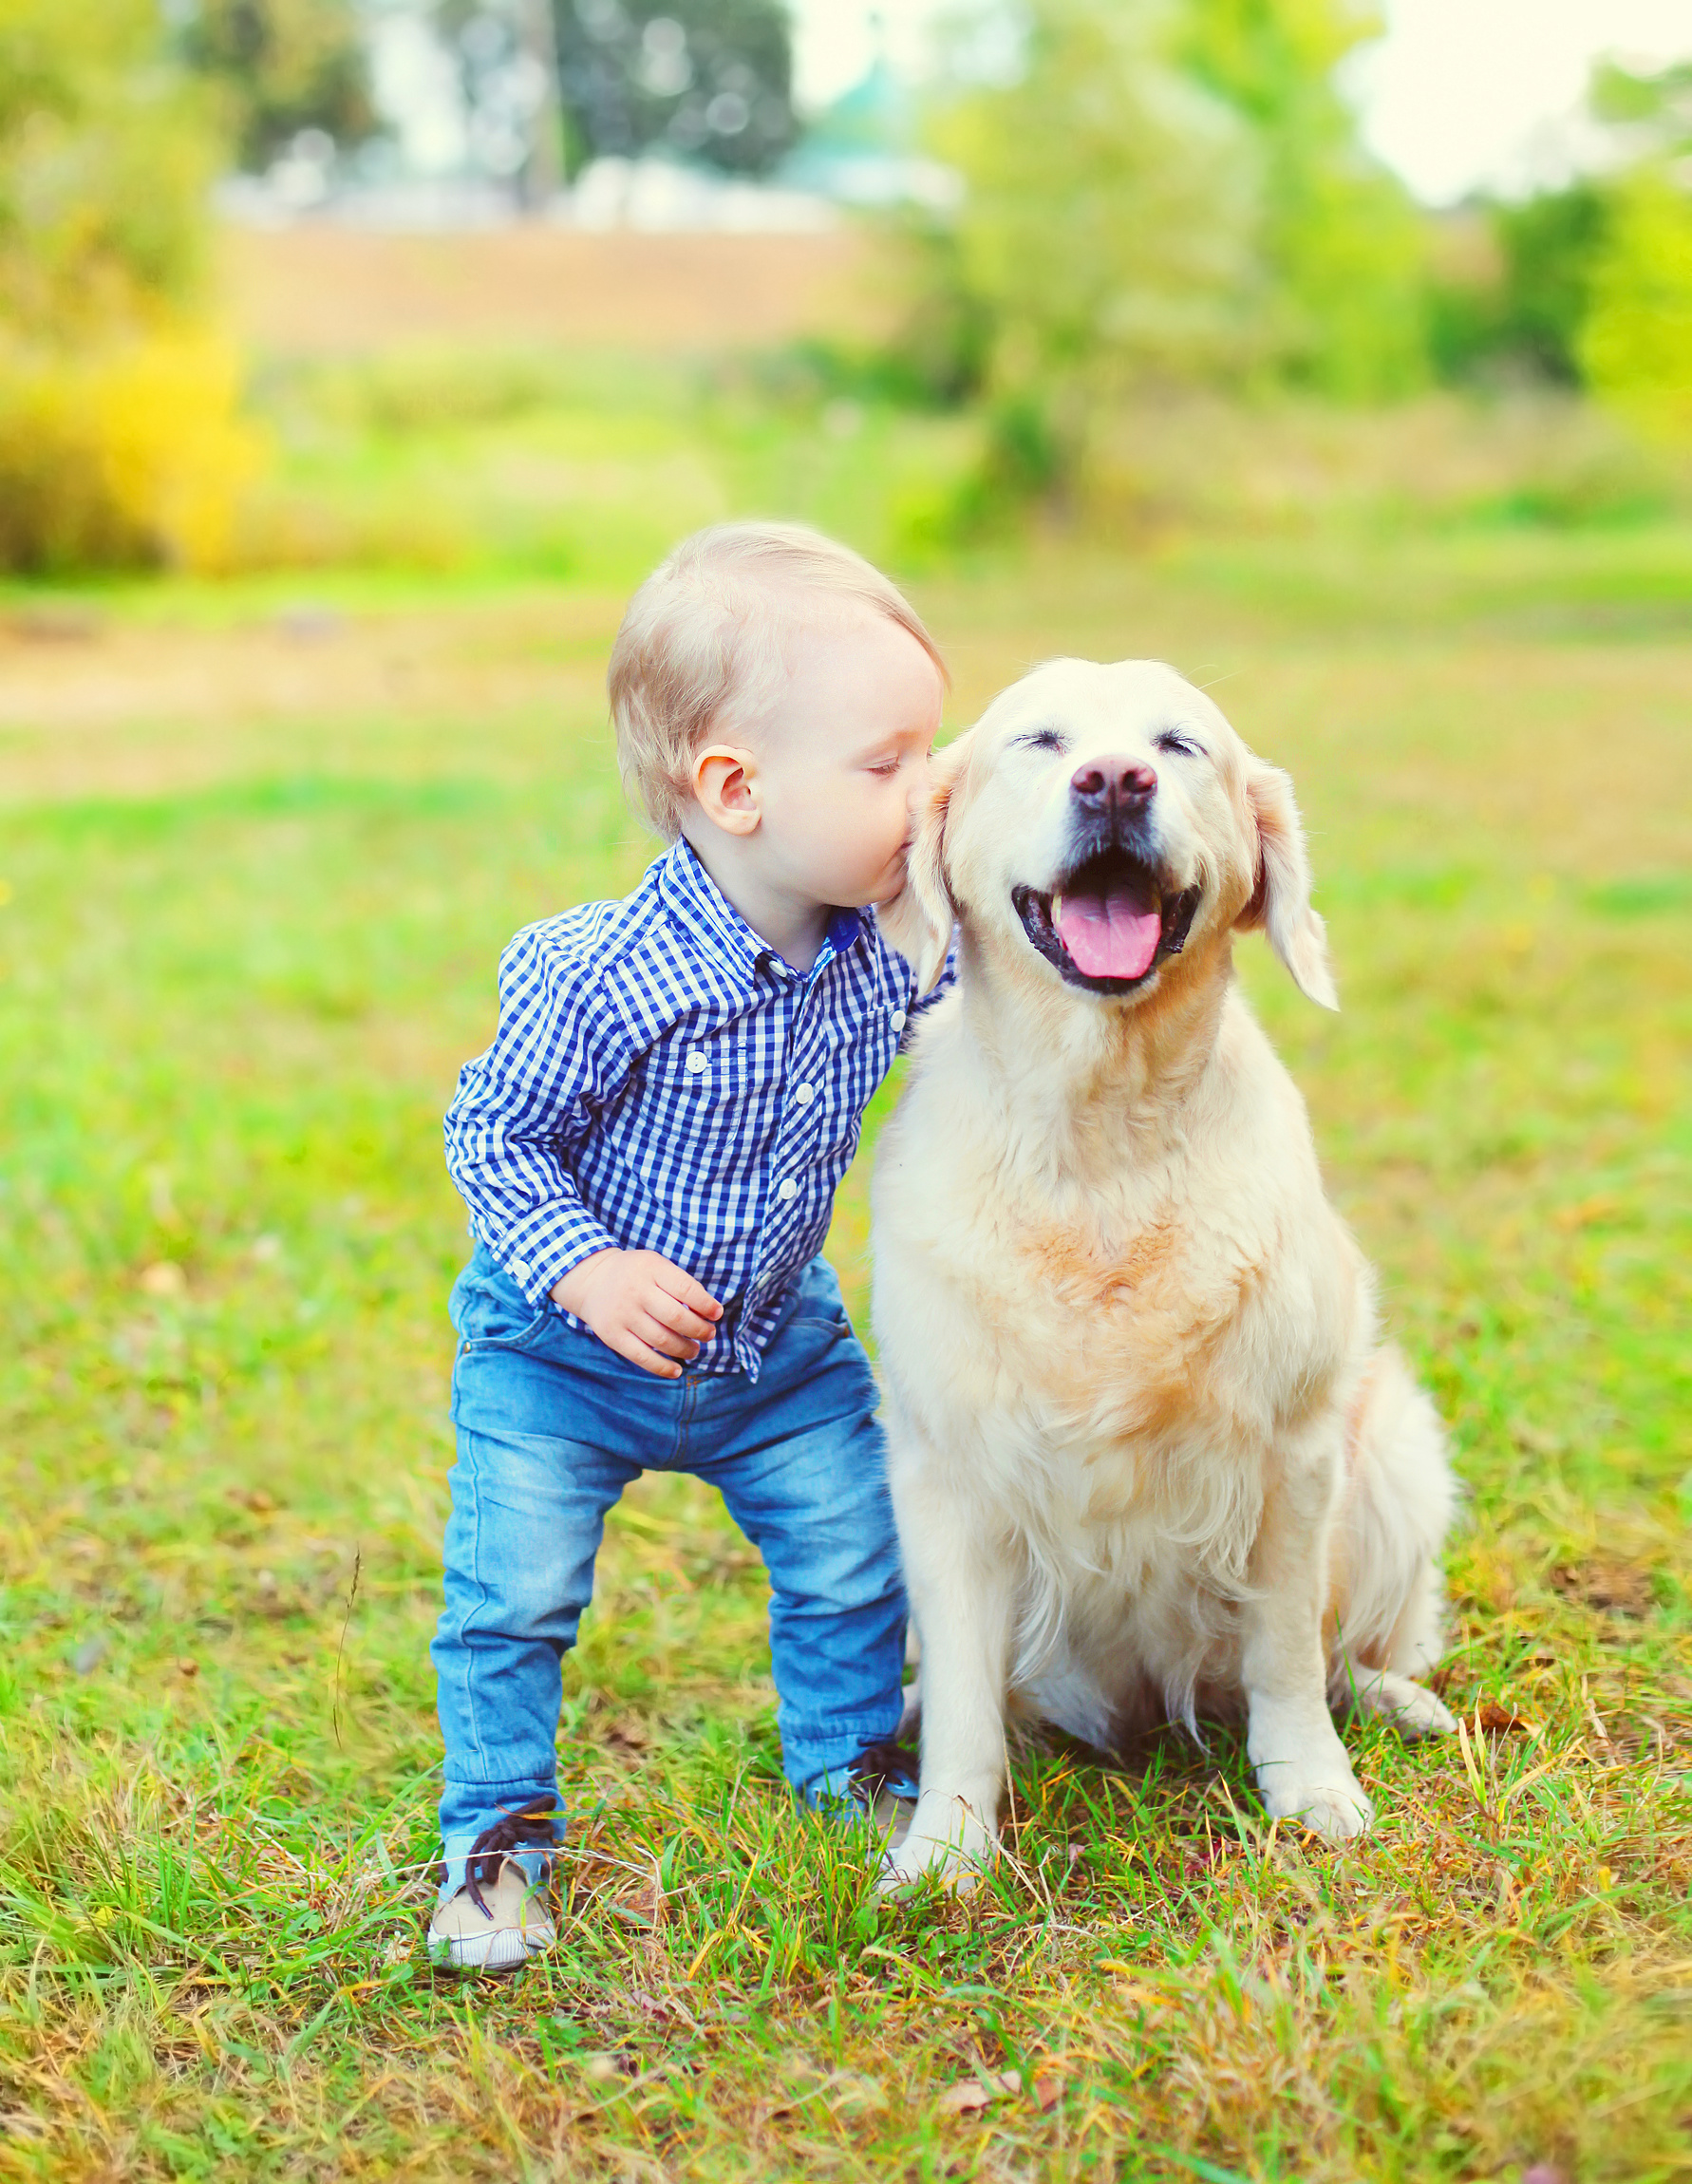 Little boy child kissing Golden Retriever dog on grass in park